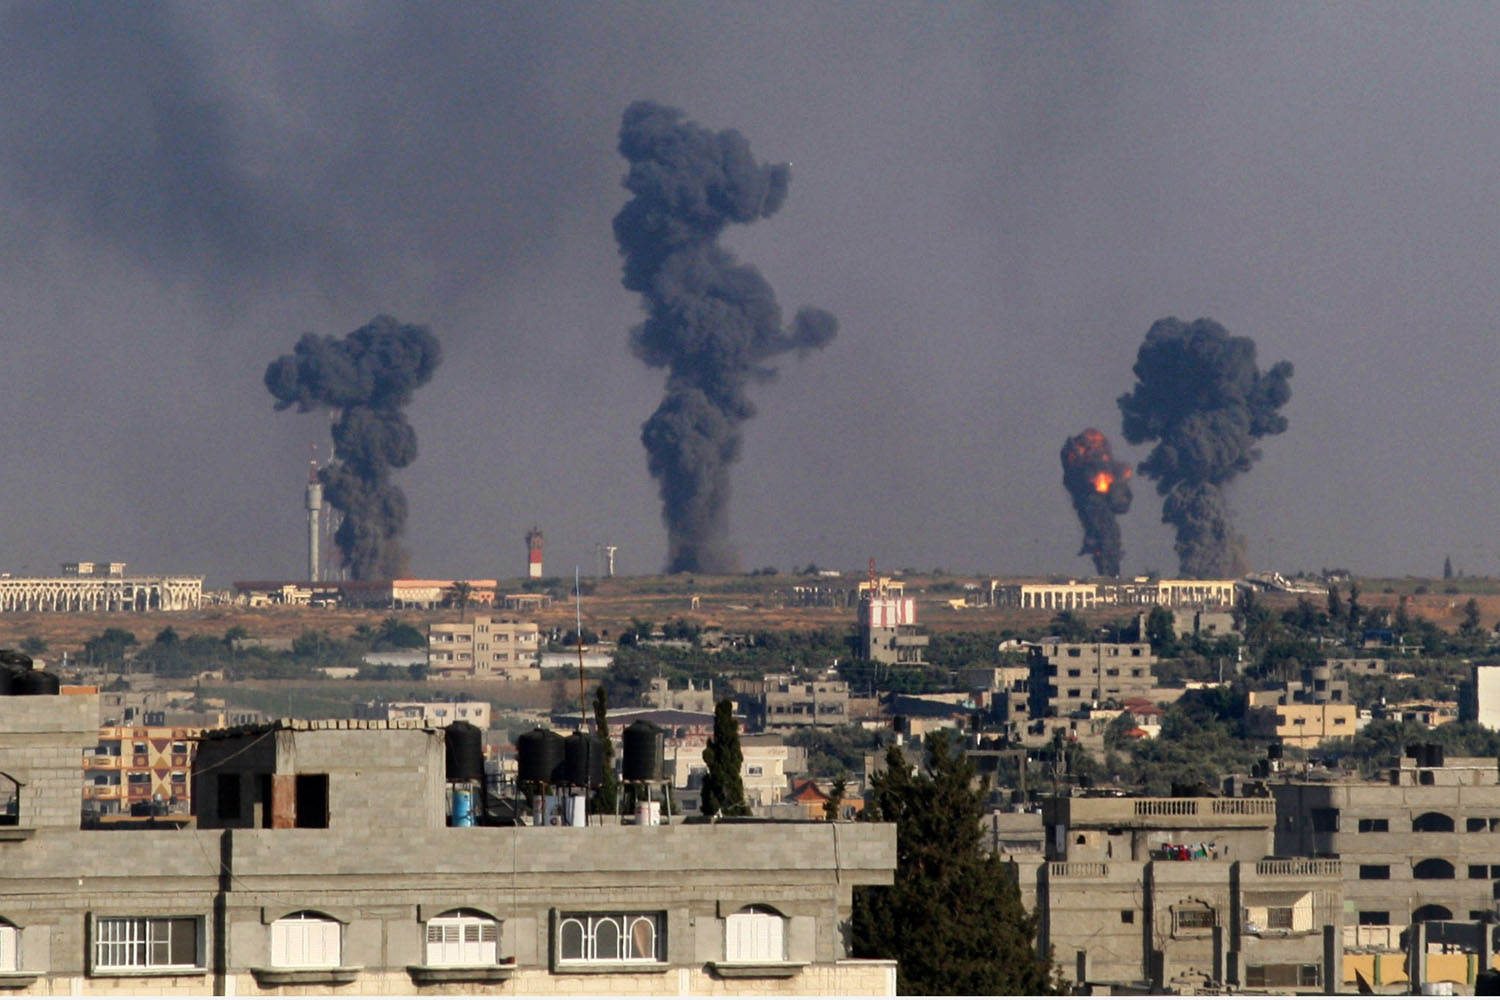 Jul. 7, 2014. A ball of fire is seen following an Israel airstrike on Gaza International Airport in Rafah, southern Gaza. Israeli air strikes on Gaza killed eight Palestinian militants, medics said after recovering several bodies from a collapsed tunnel in Rafah.